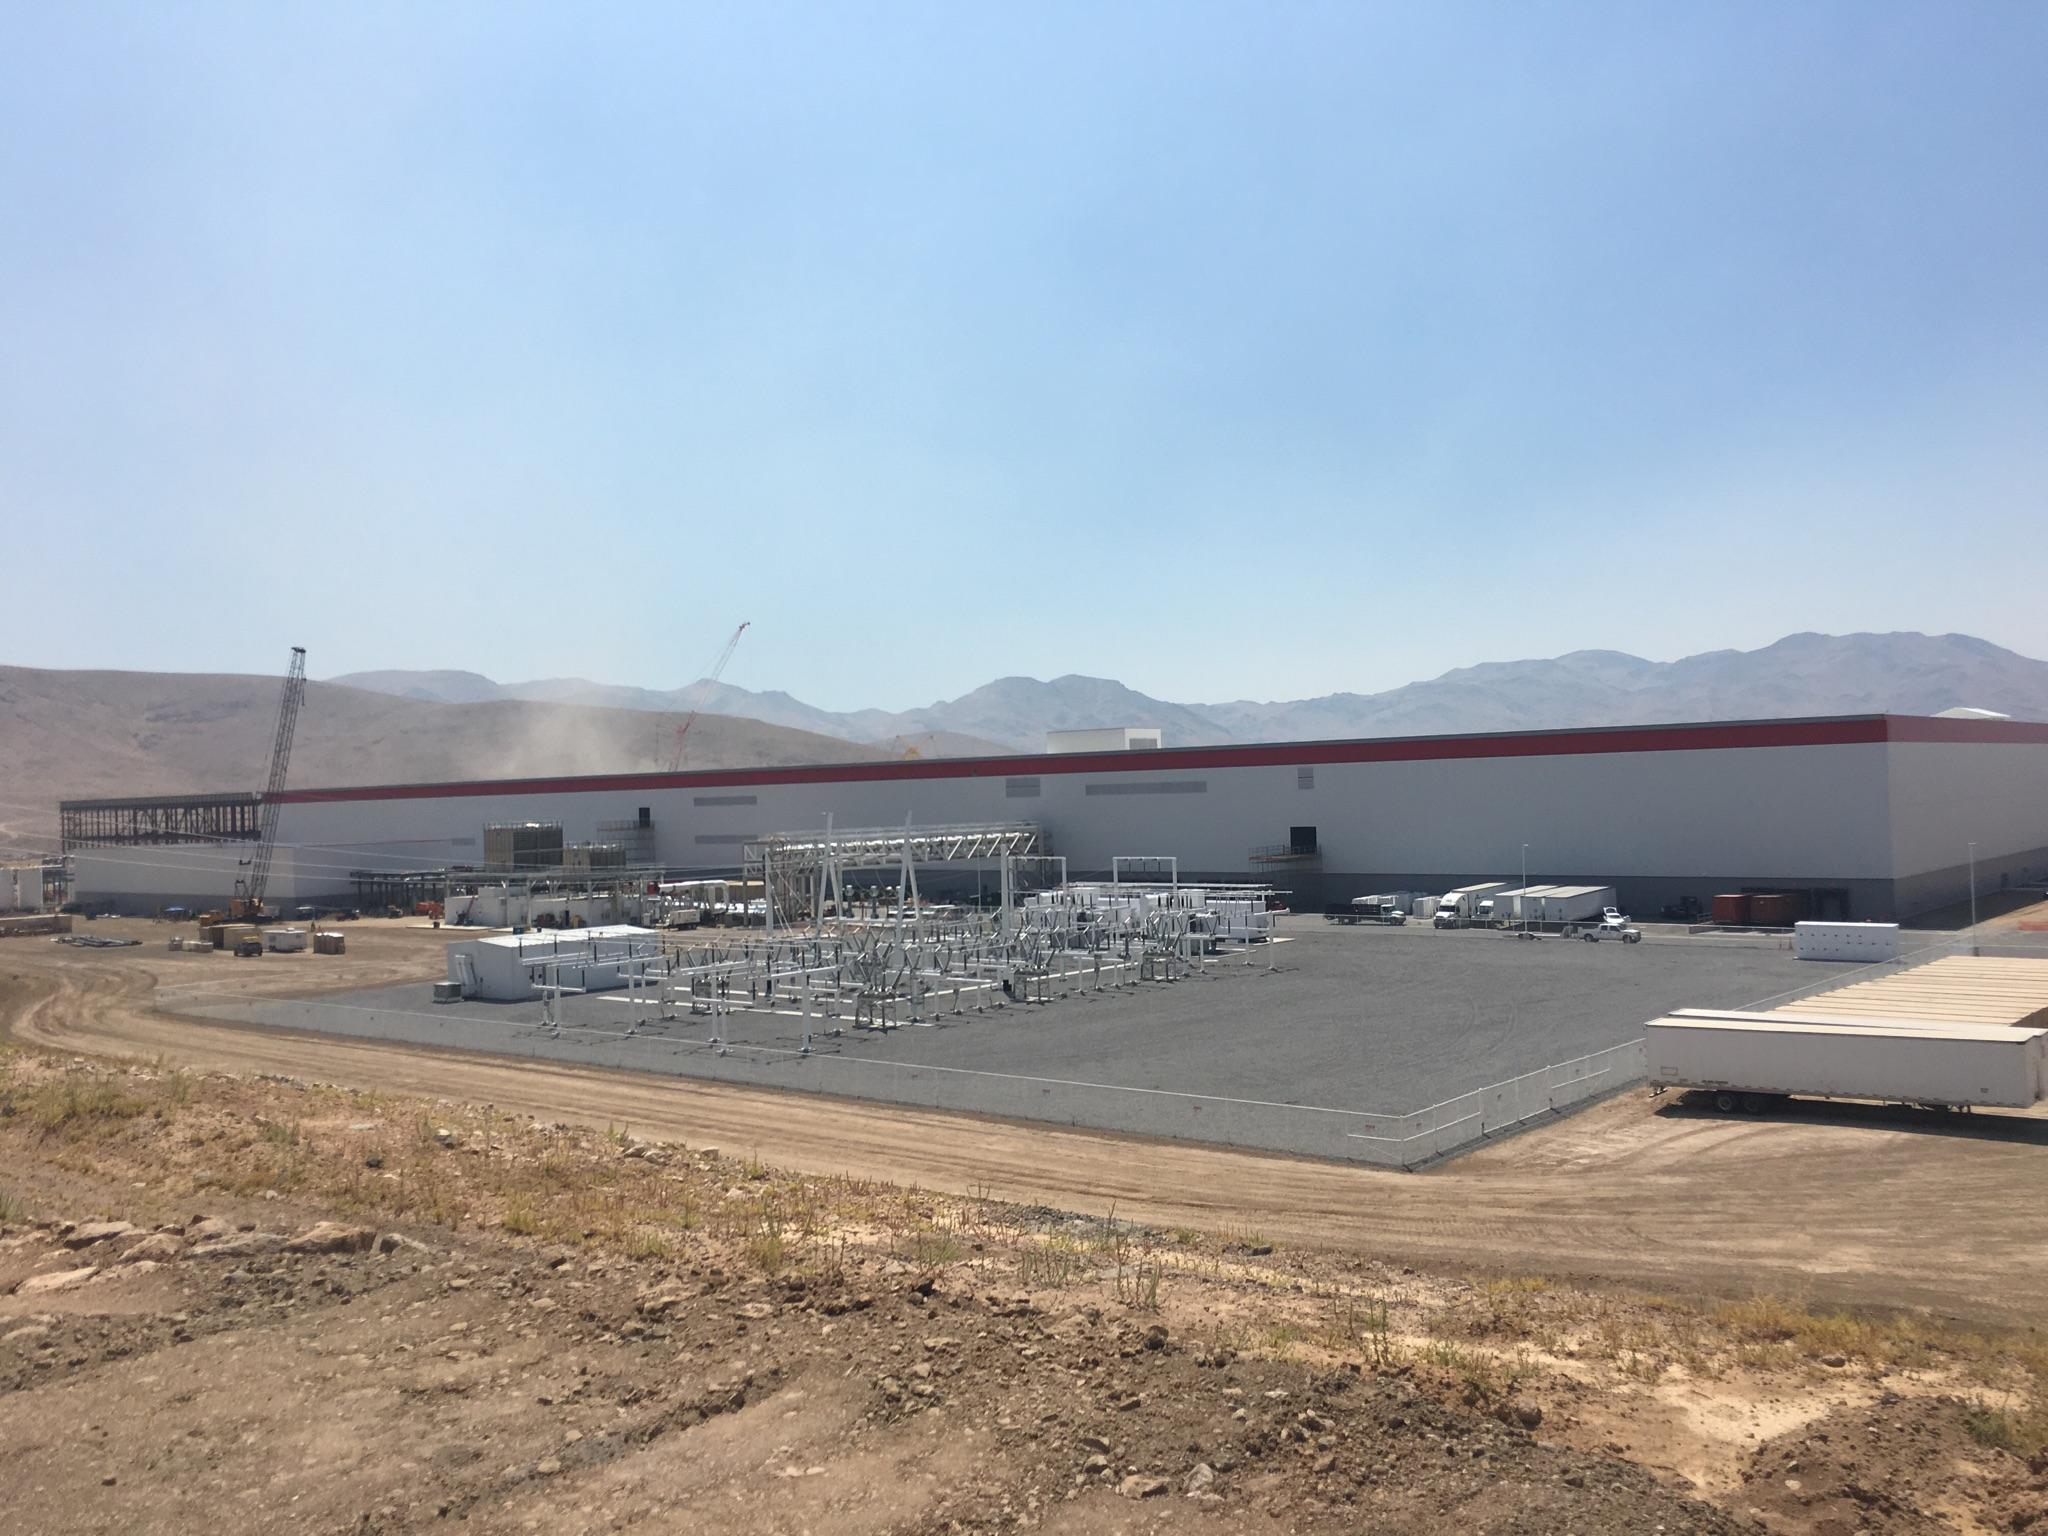 Eastern wall of Tesla's factory.